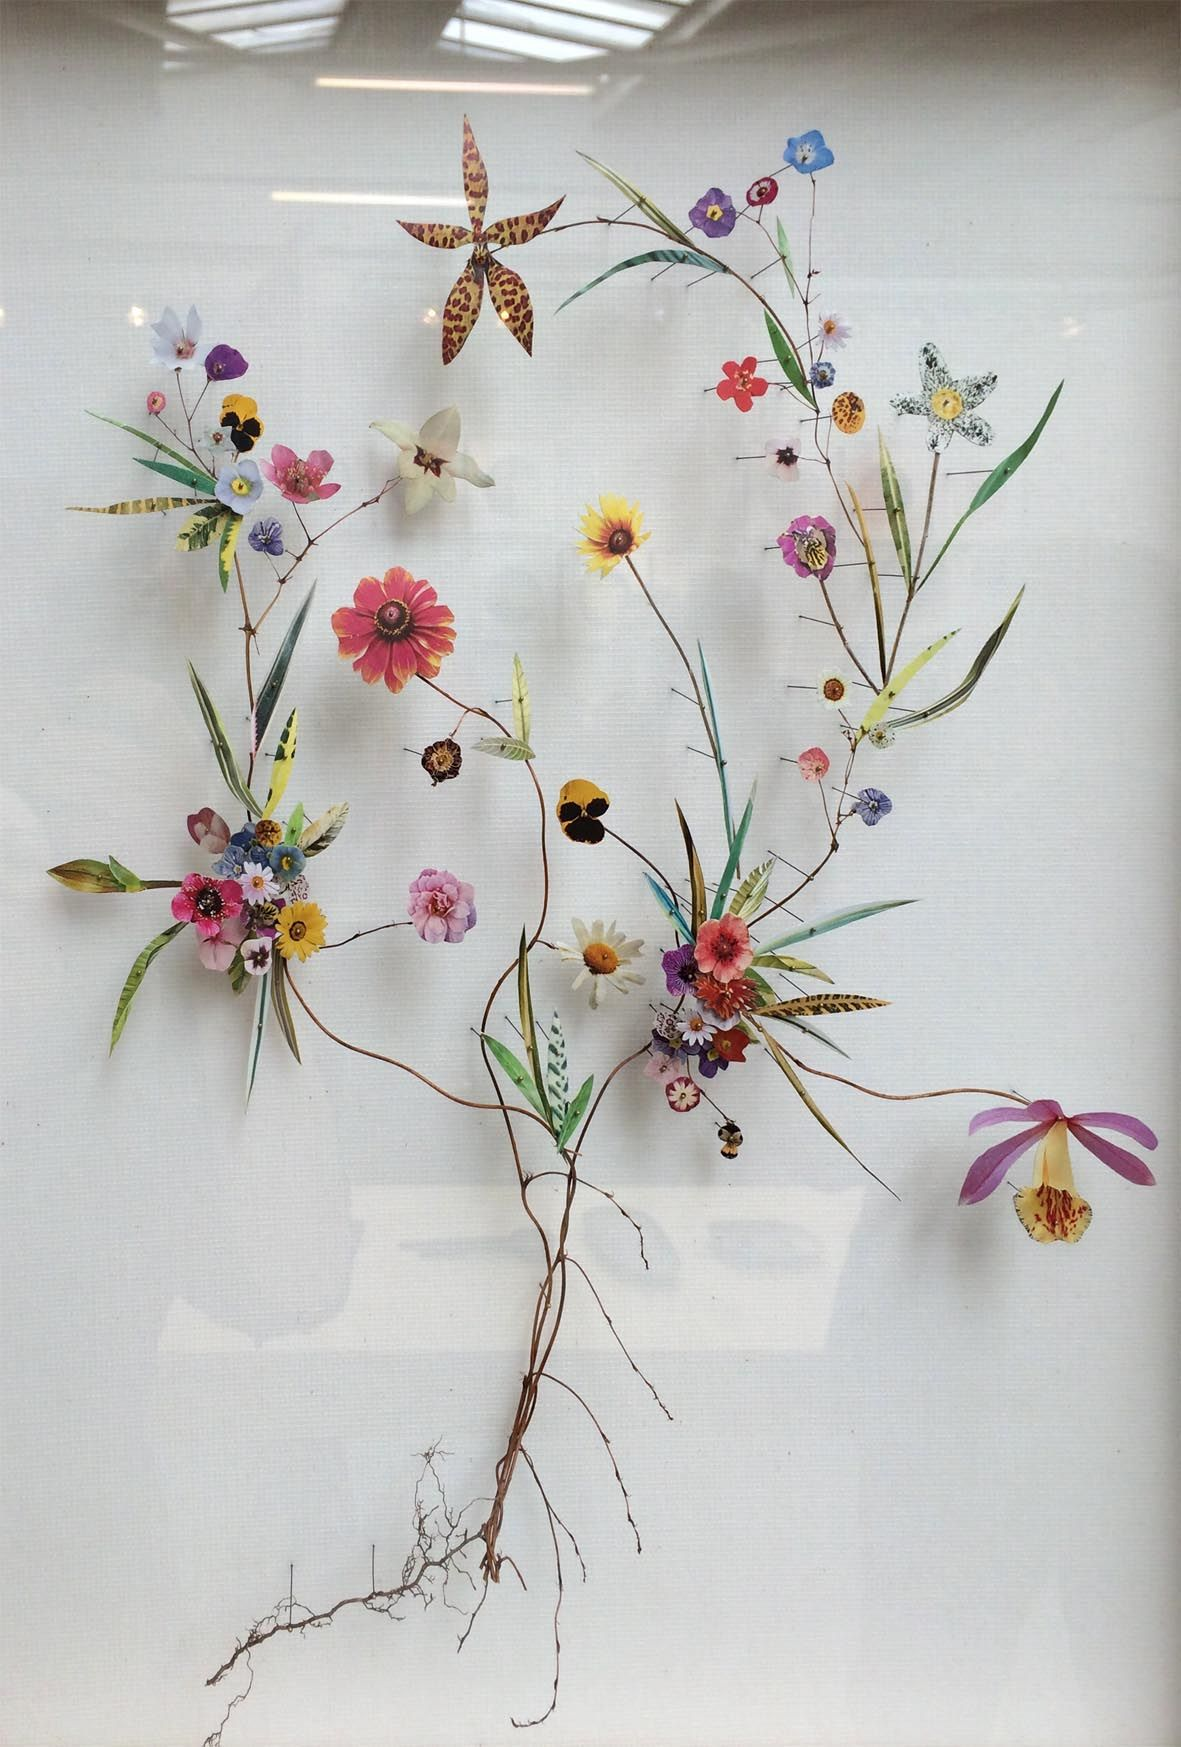 Flower Construction By Anne Ten Donkelaar A Mix Of Real And Cut Out